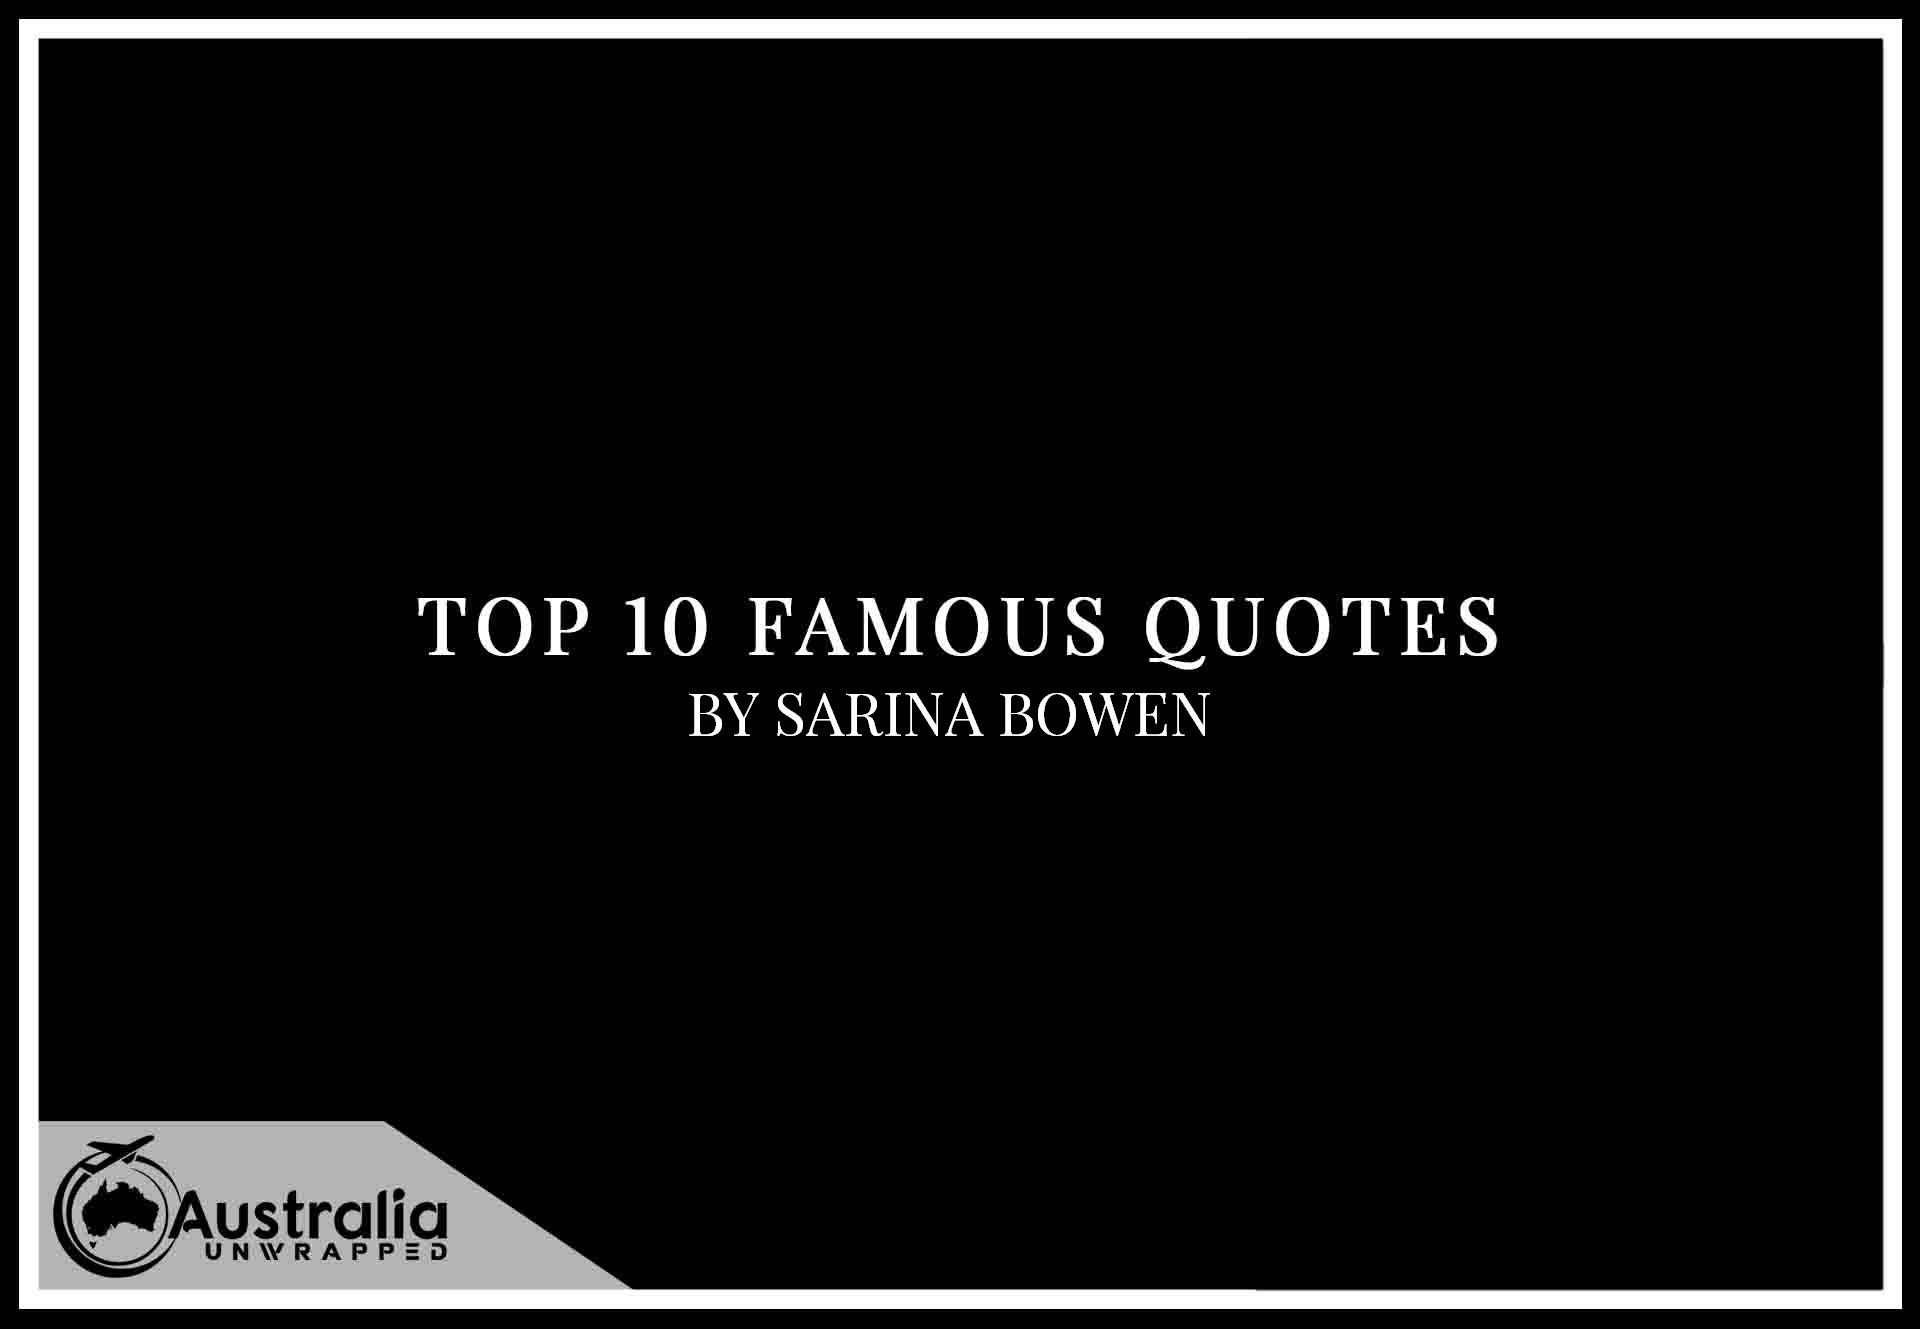 Top 10 Famous Quotes by Author Sarina Bowen